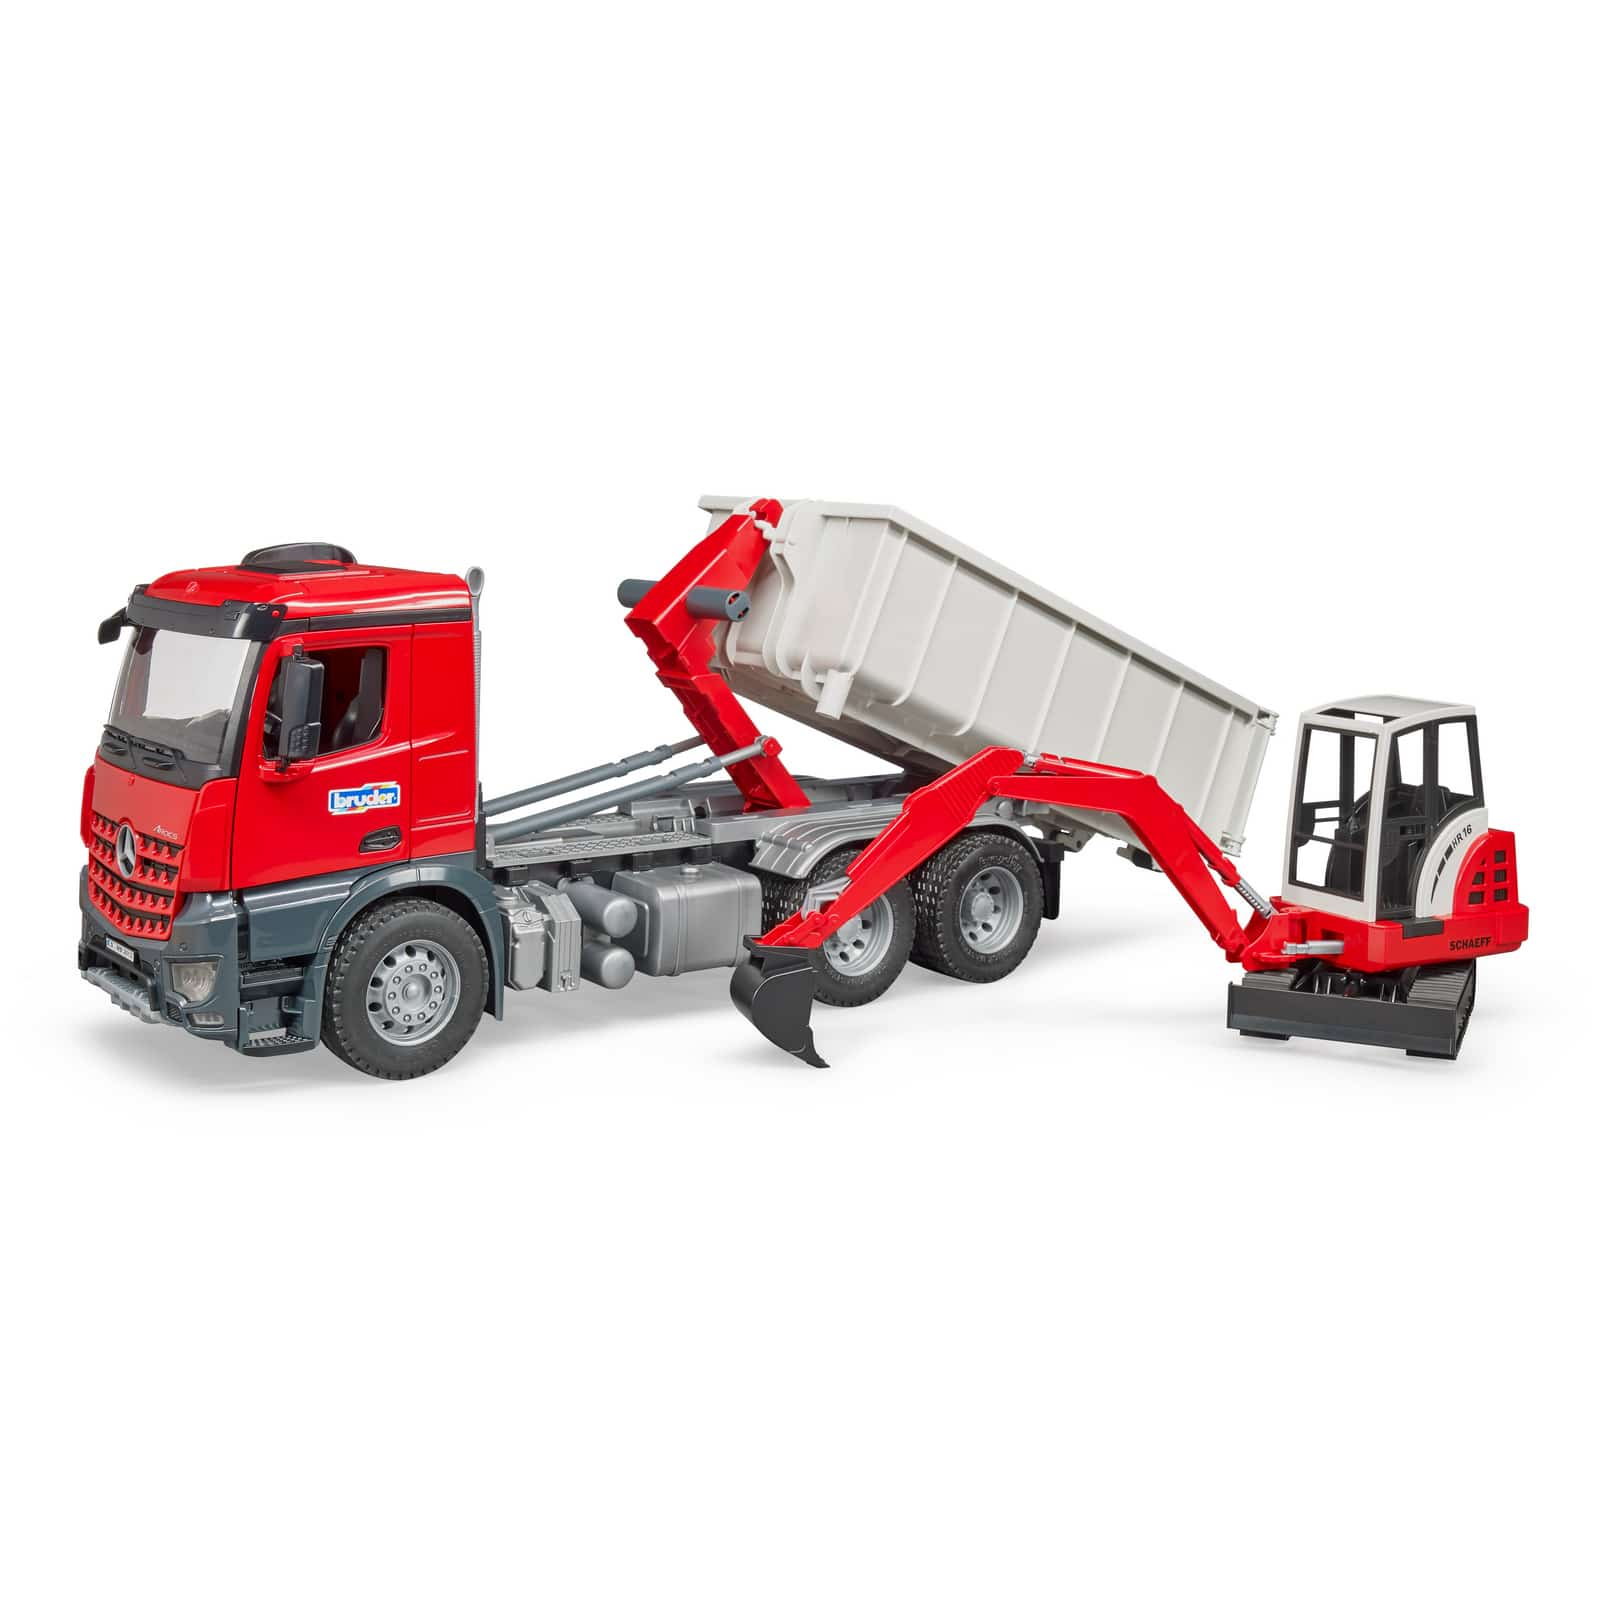 018f9b06b066 Bruder MB Arocs Truck with Roll Off Container and Schaeff Excavator